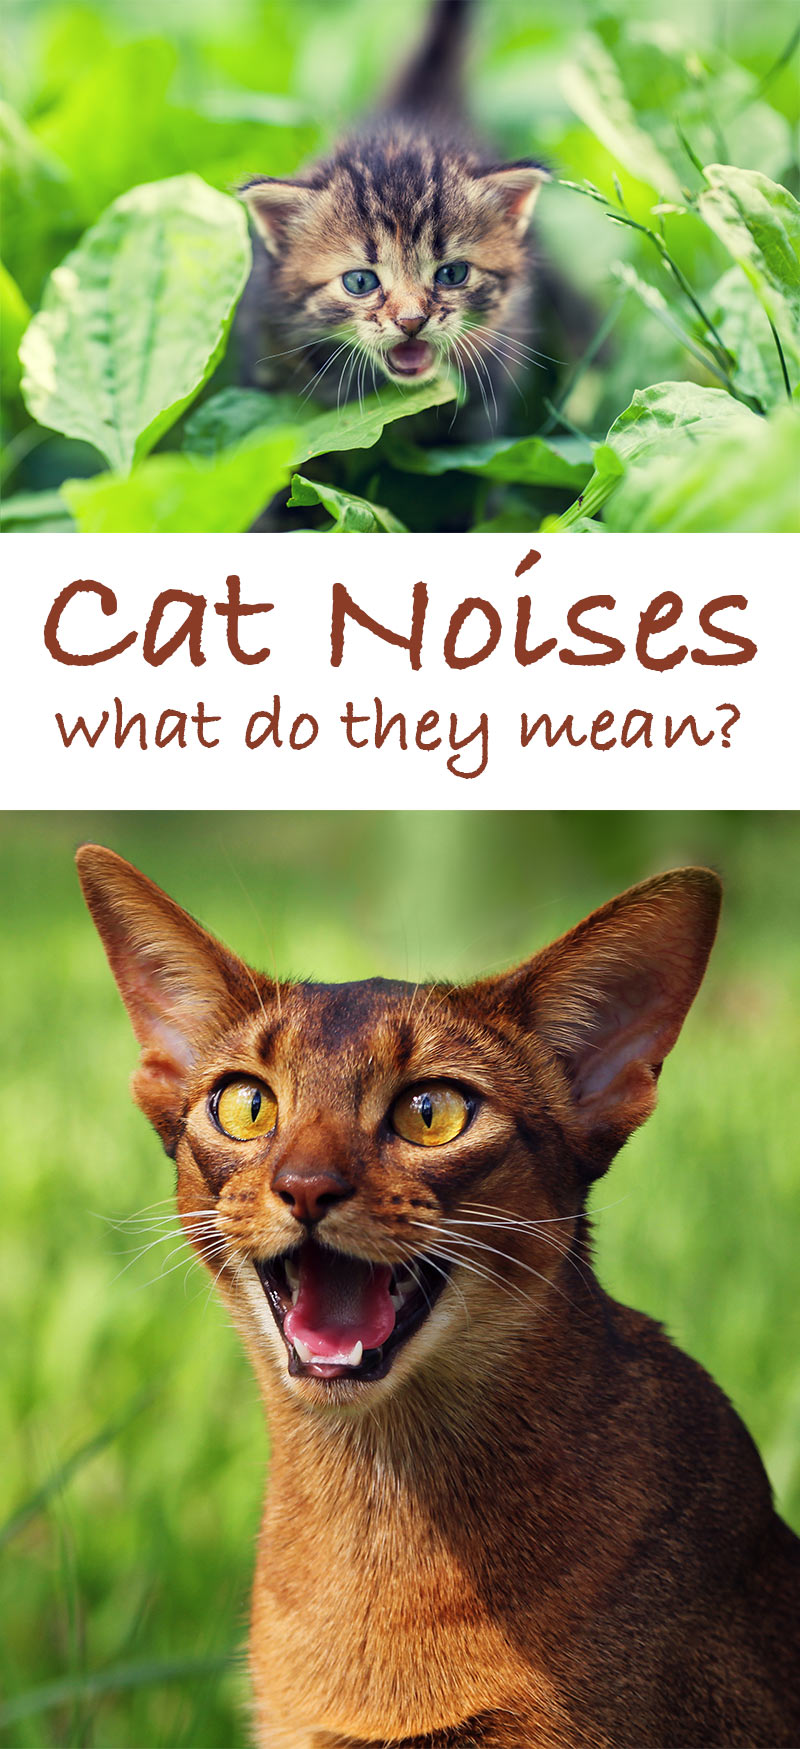 Kitty Sounds - A guide to cat noises and their meanings